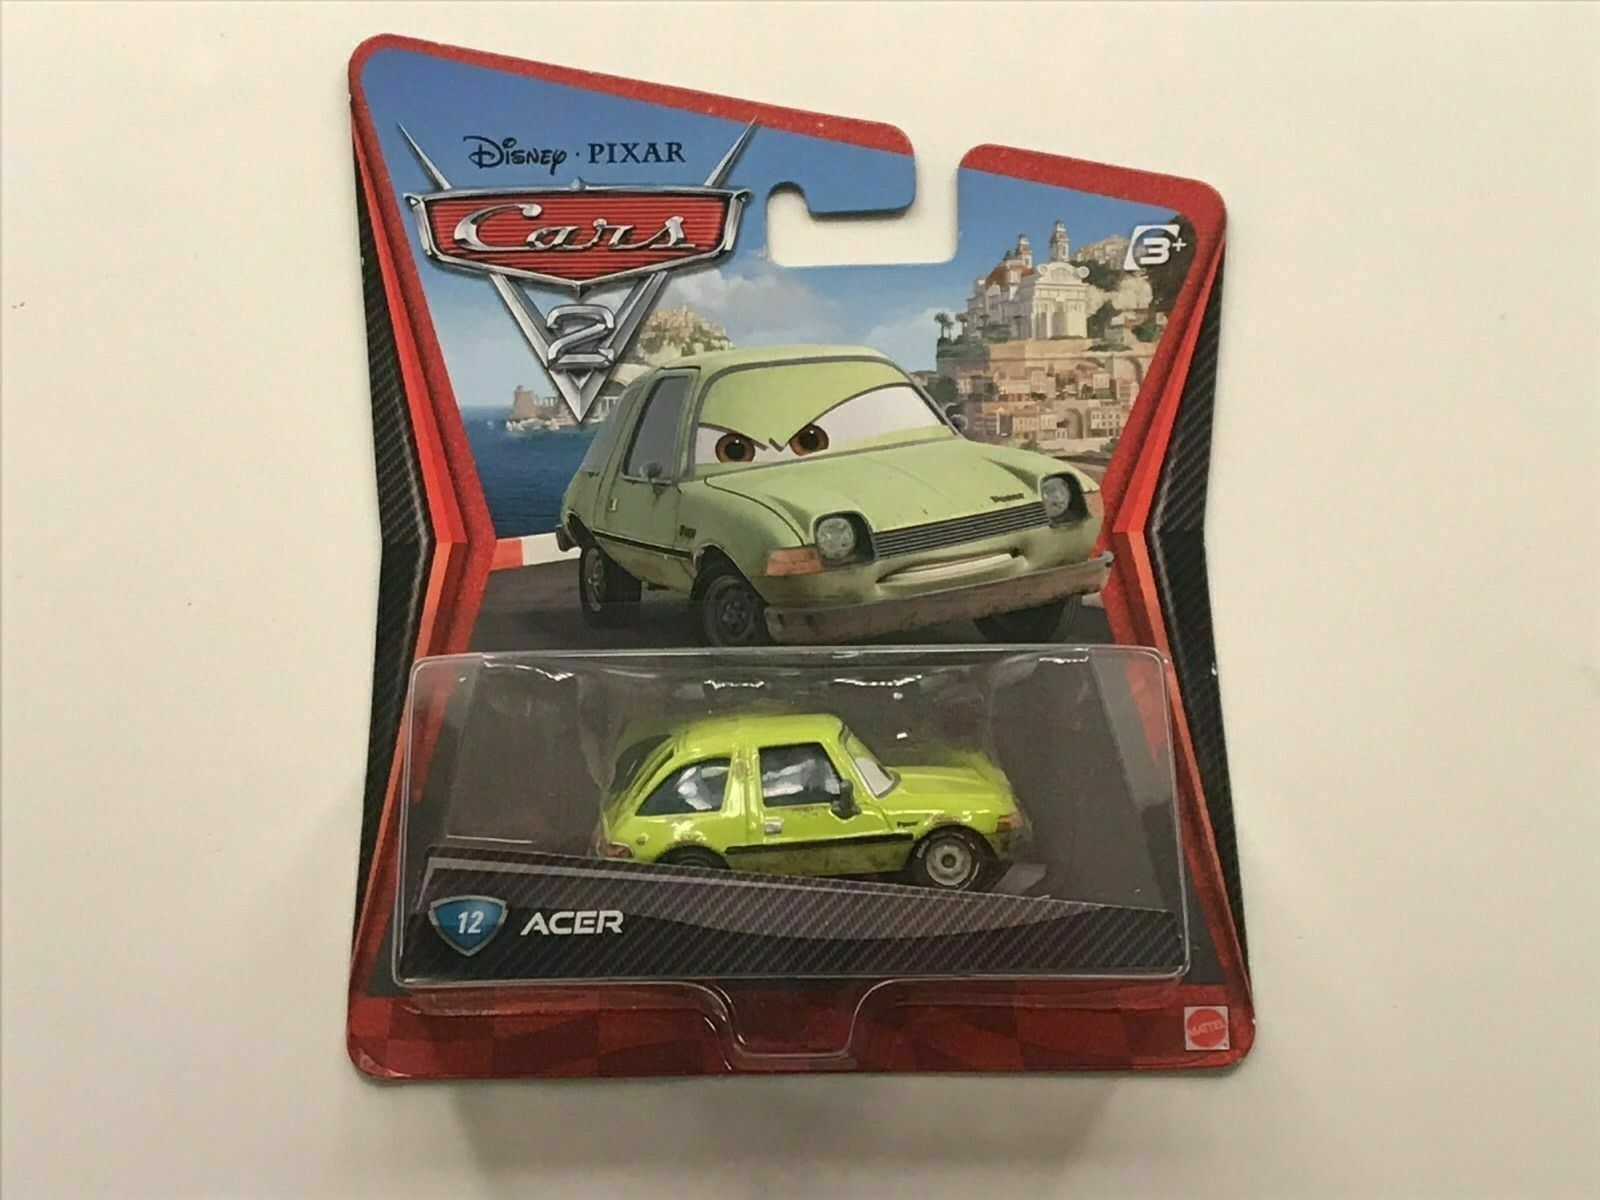 Disney Pixar Cars 2 Acer #12 I Have More Cars /& Always Combine Shipping.